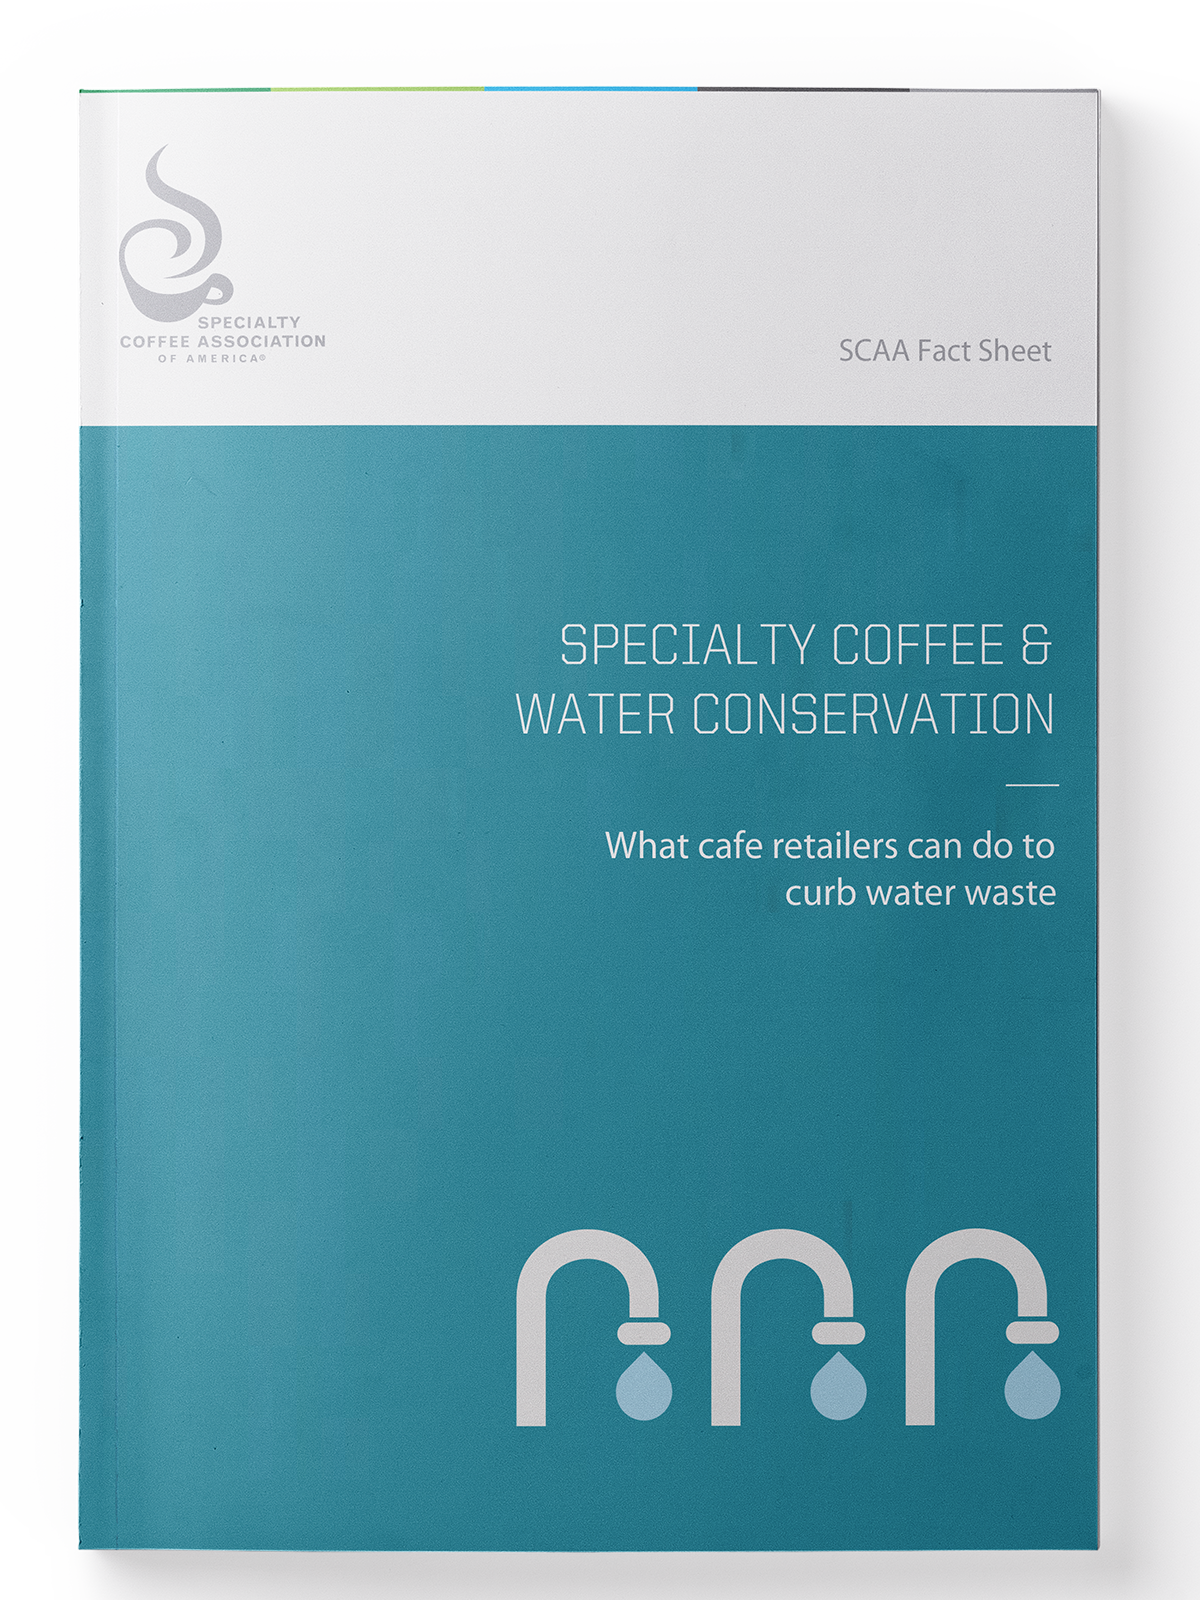 Specialty Coffee & Water Conservation     What cafe retailers can do to curb water waste    As we look to the future, issues such as climate change and population growth present increasing challenges to our water supply - at both global and local levels. This free fact sheet looks at current water usage and opportunities for cafe retailers to support conservations efforts. Download the Specialty Coffee & Water Conservation fact sheet now.   Download